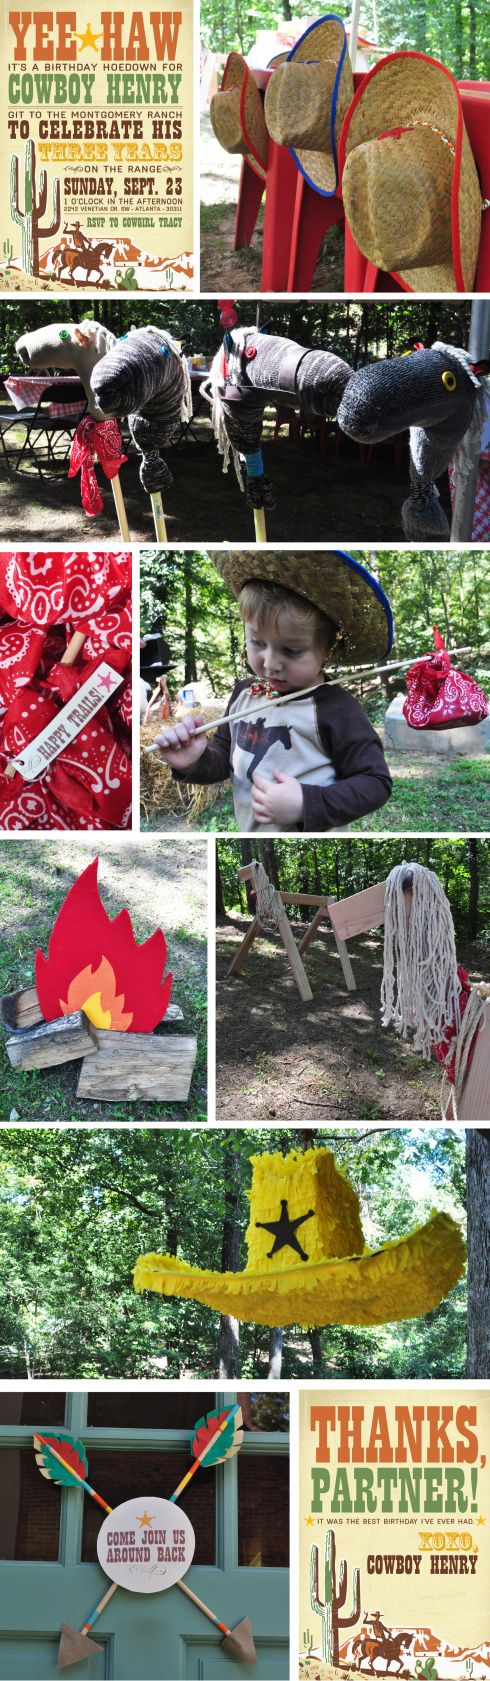 CowboyParty, Kim O and Jessica M, this is adorable for a kids party